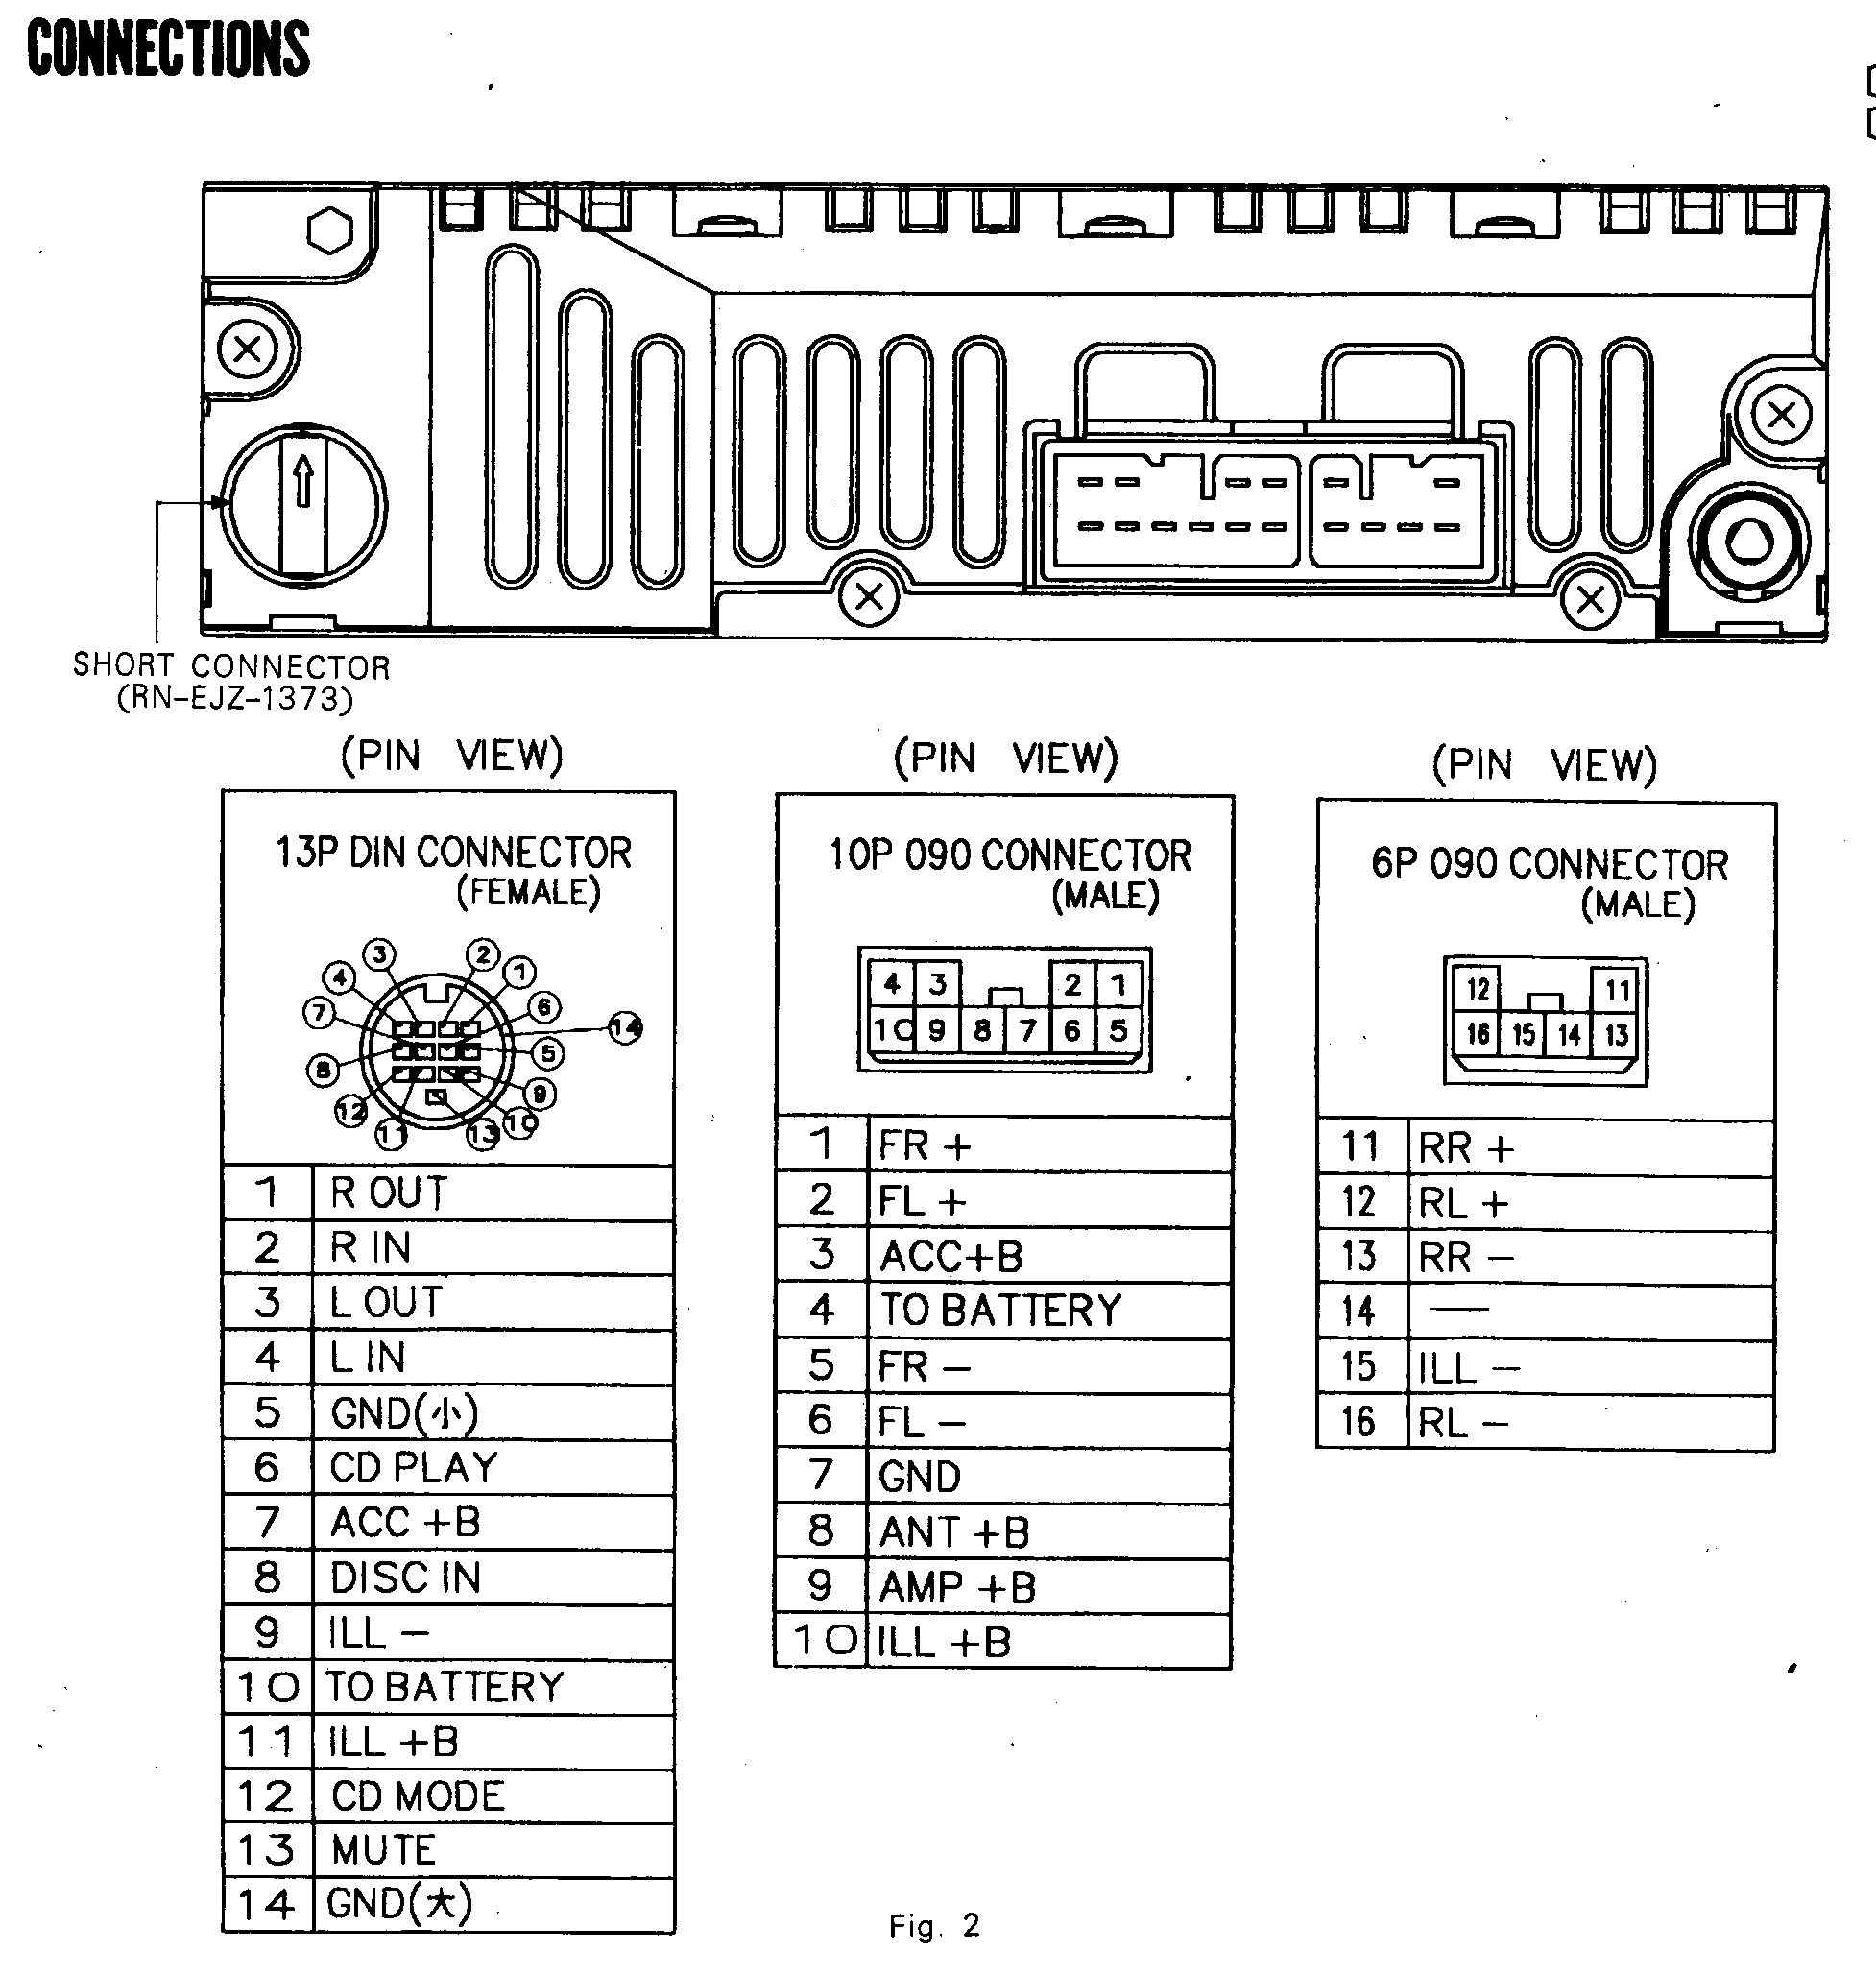 dodgecar wiring diagram page 5 wiring diagram schematic name rh 2 5 systembeimroulette de car stereo wiring diagram kenwood